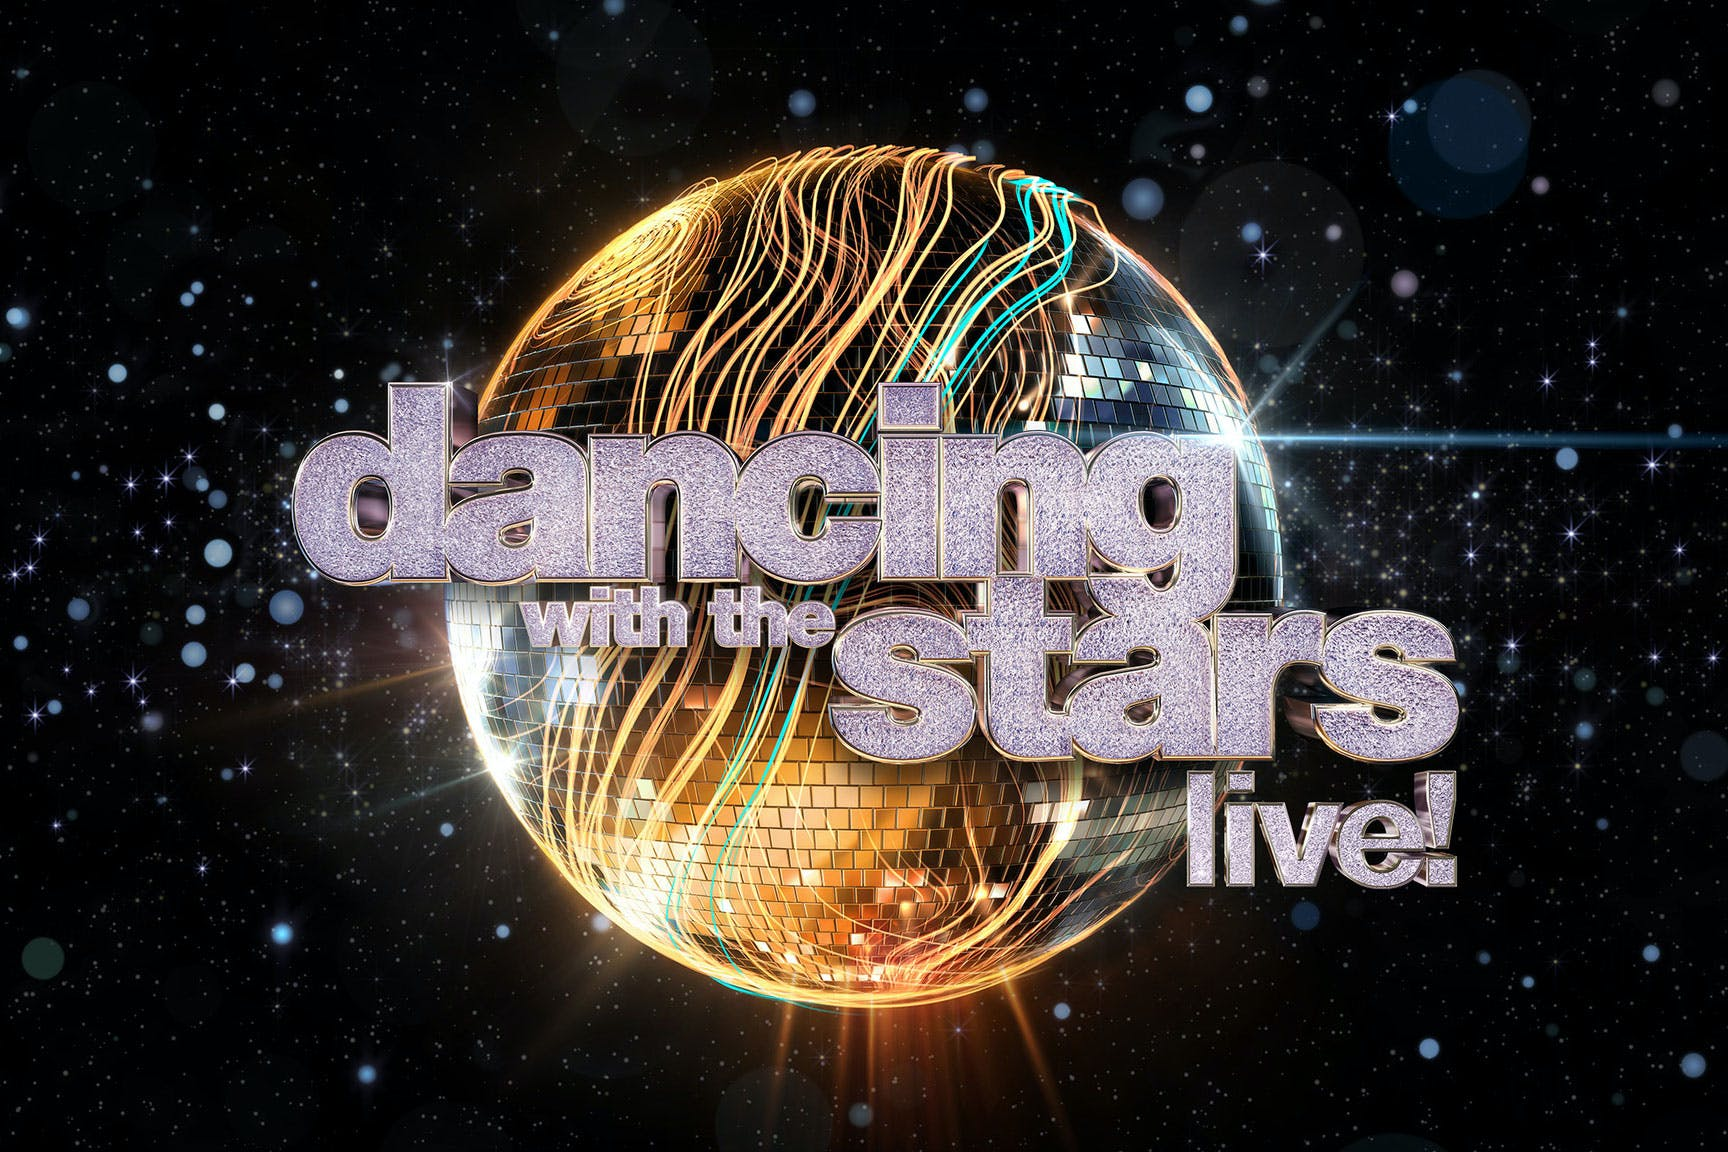 dancing-with-the-stars-live-smart-financial-centre-2019